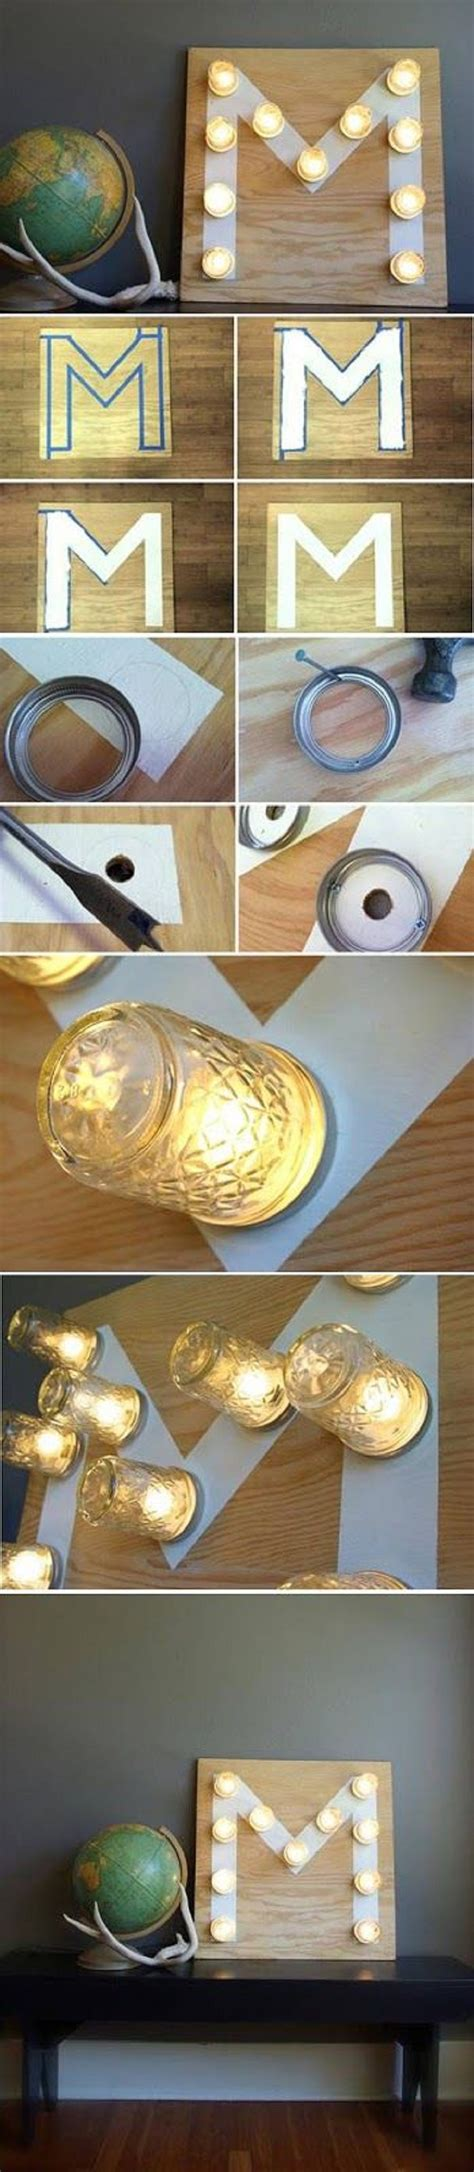 diy home decor tutorials top 10 home decor diy ideas top inspired